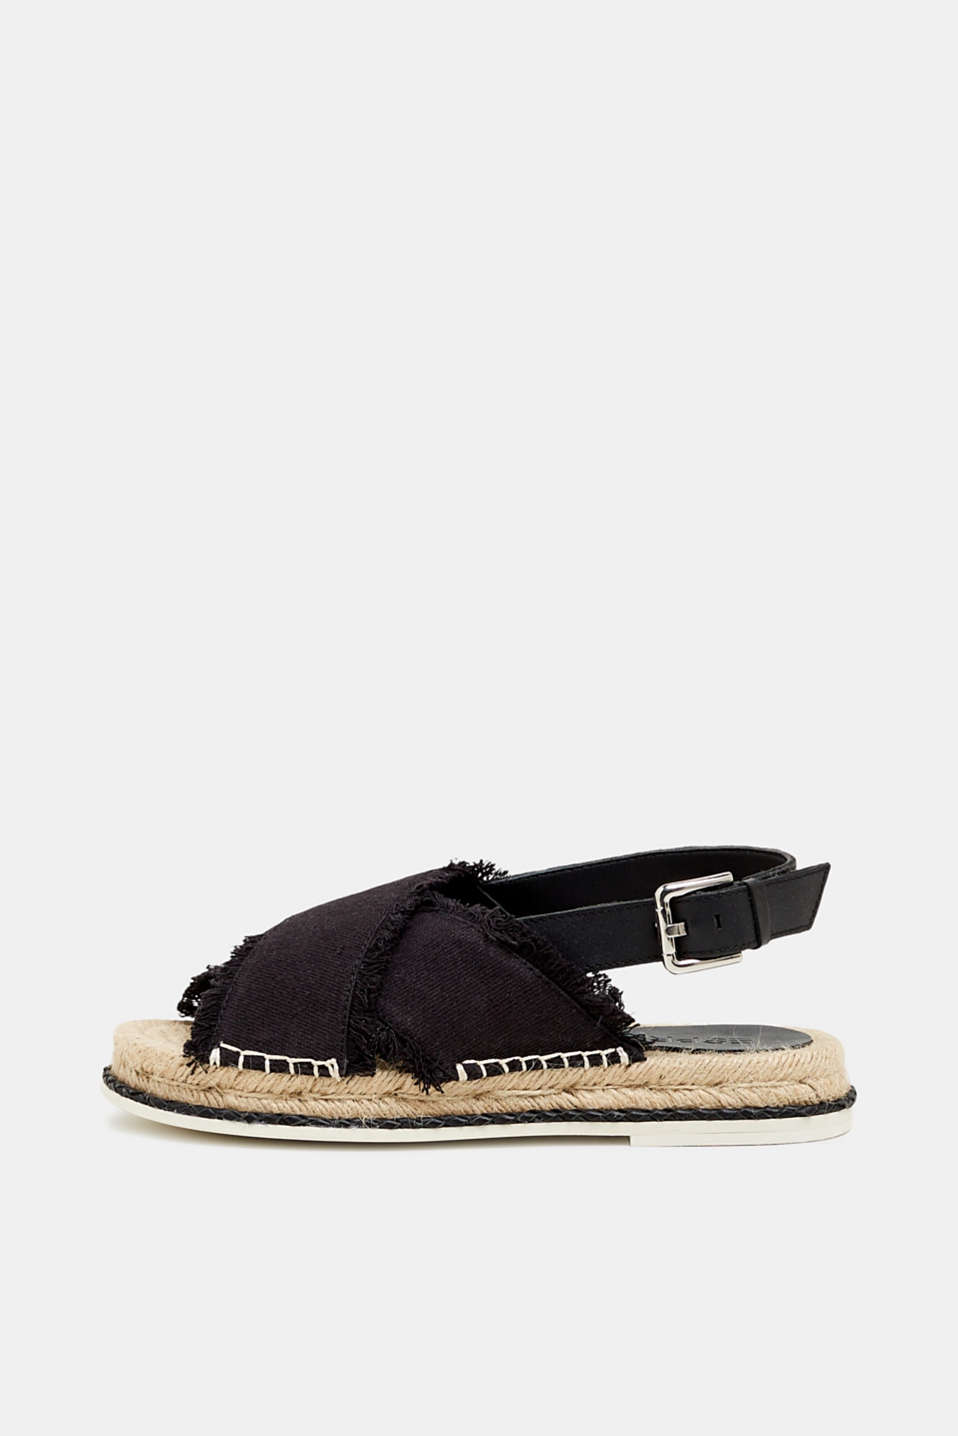 Esprit - Mixed material sandals with a bast sole